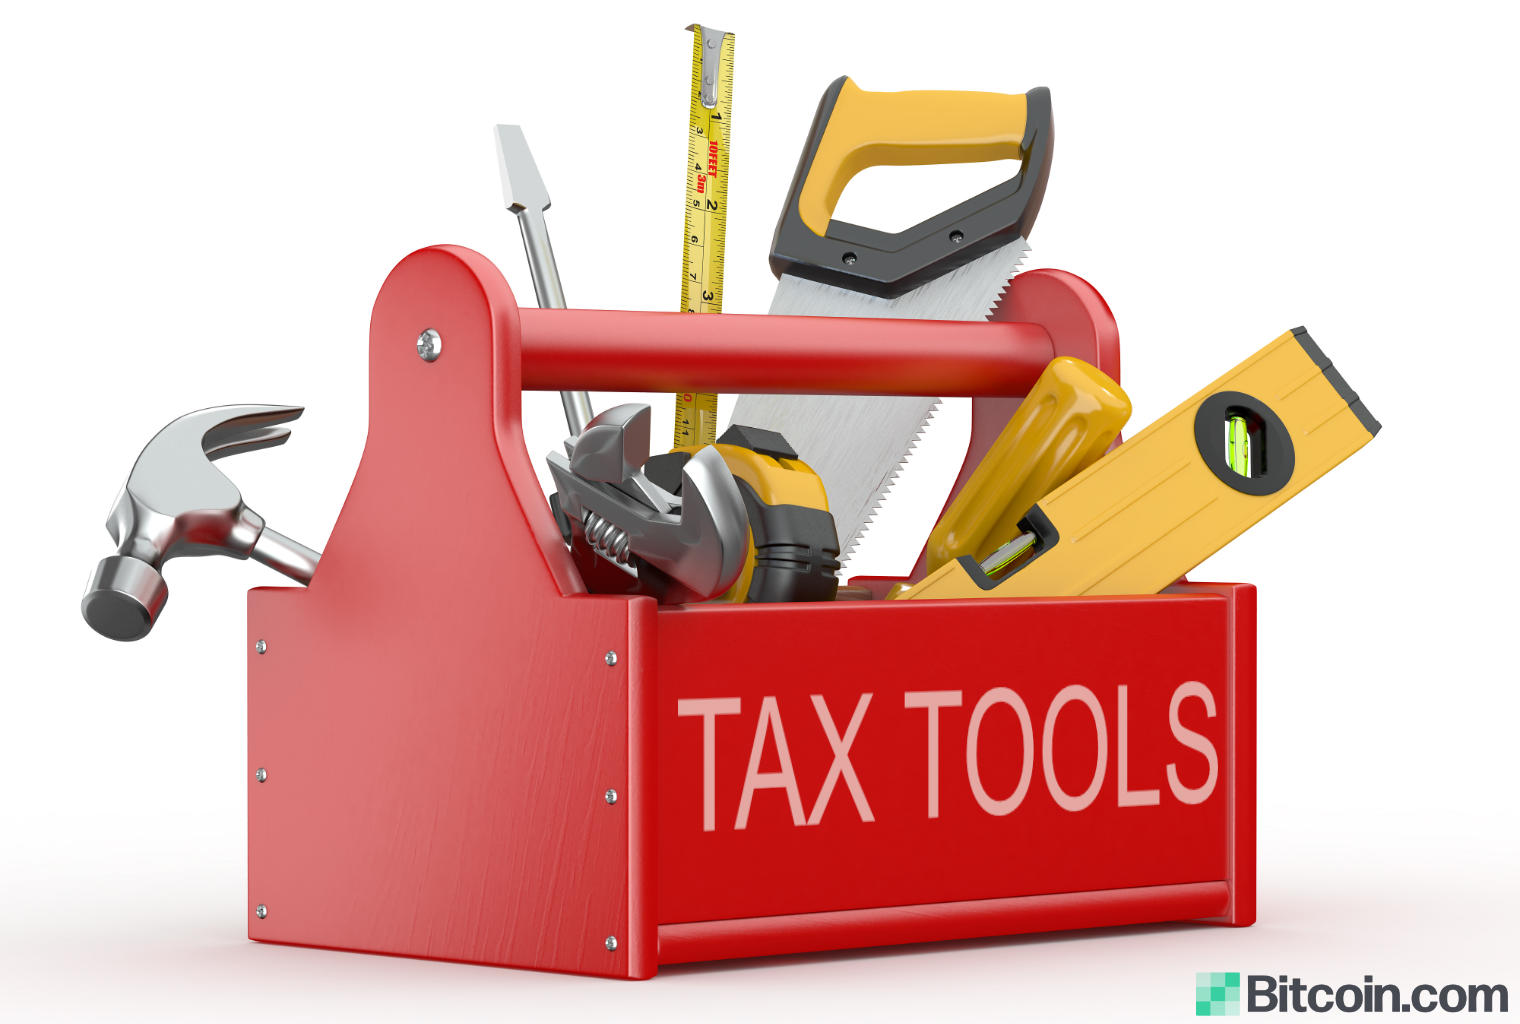 10 Tax Tools to Help Crypto Owners